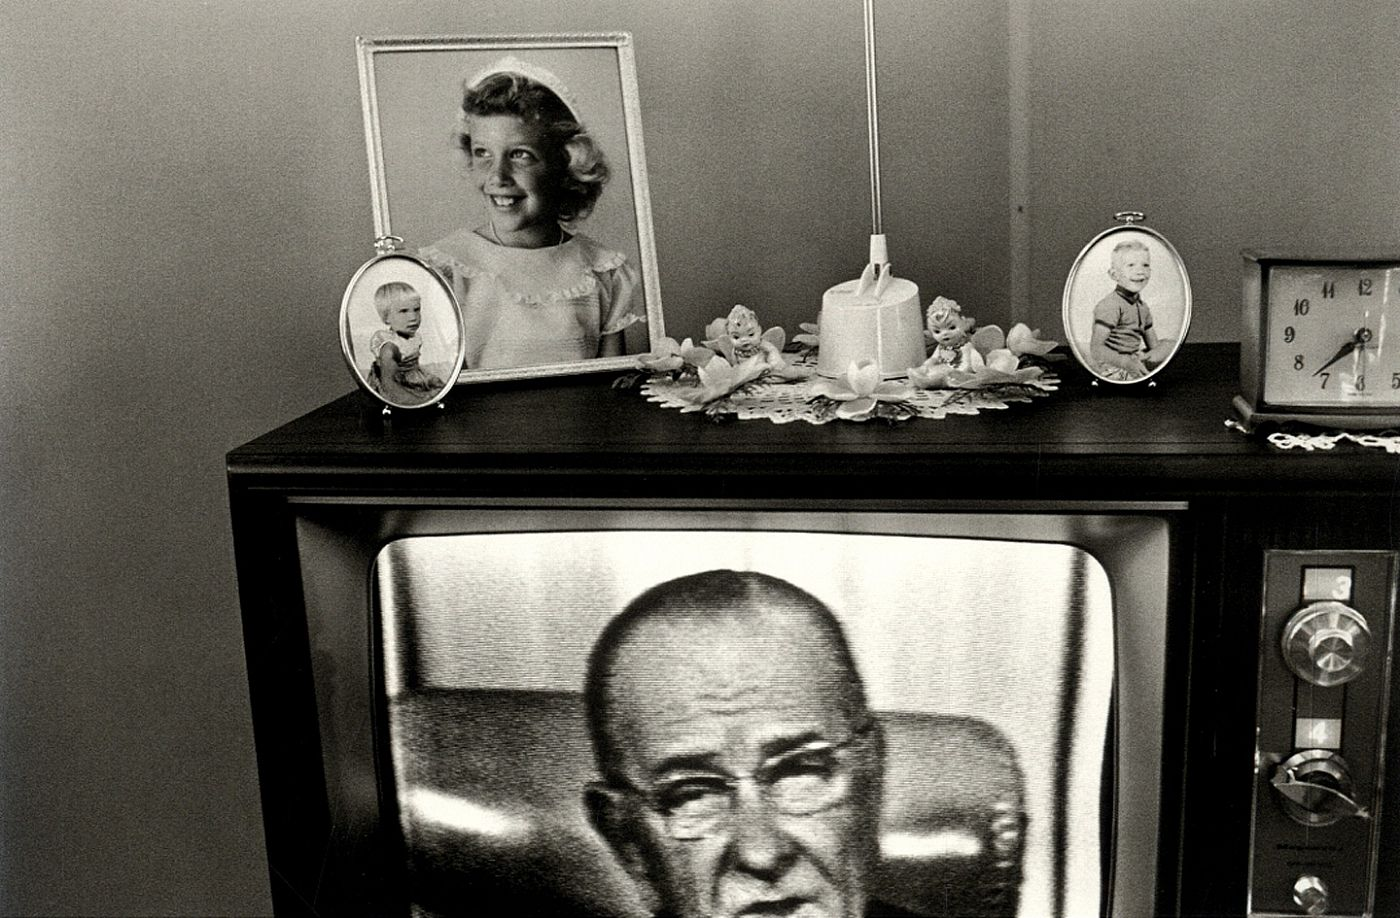 Lee Friedlander: The Little Screens, Limited Edition [SIGNED]